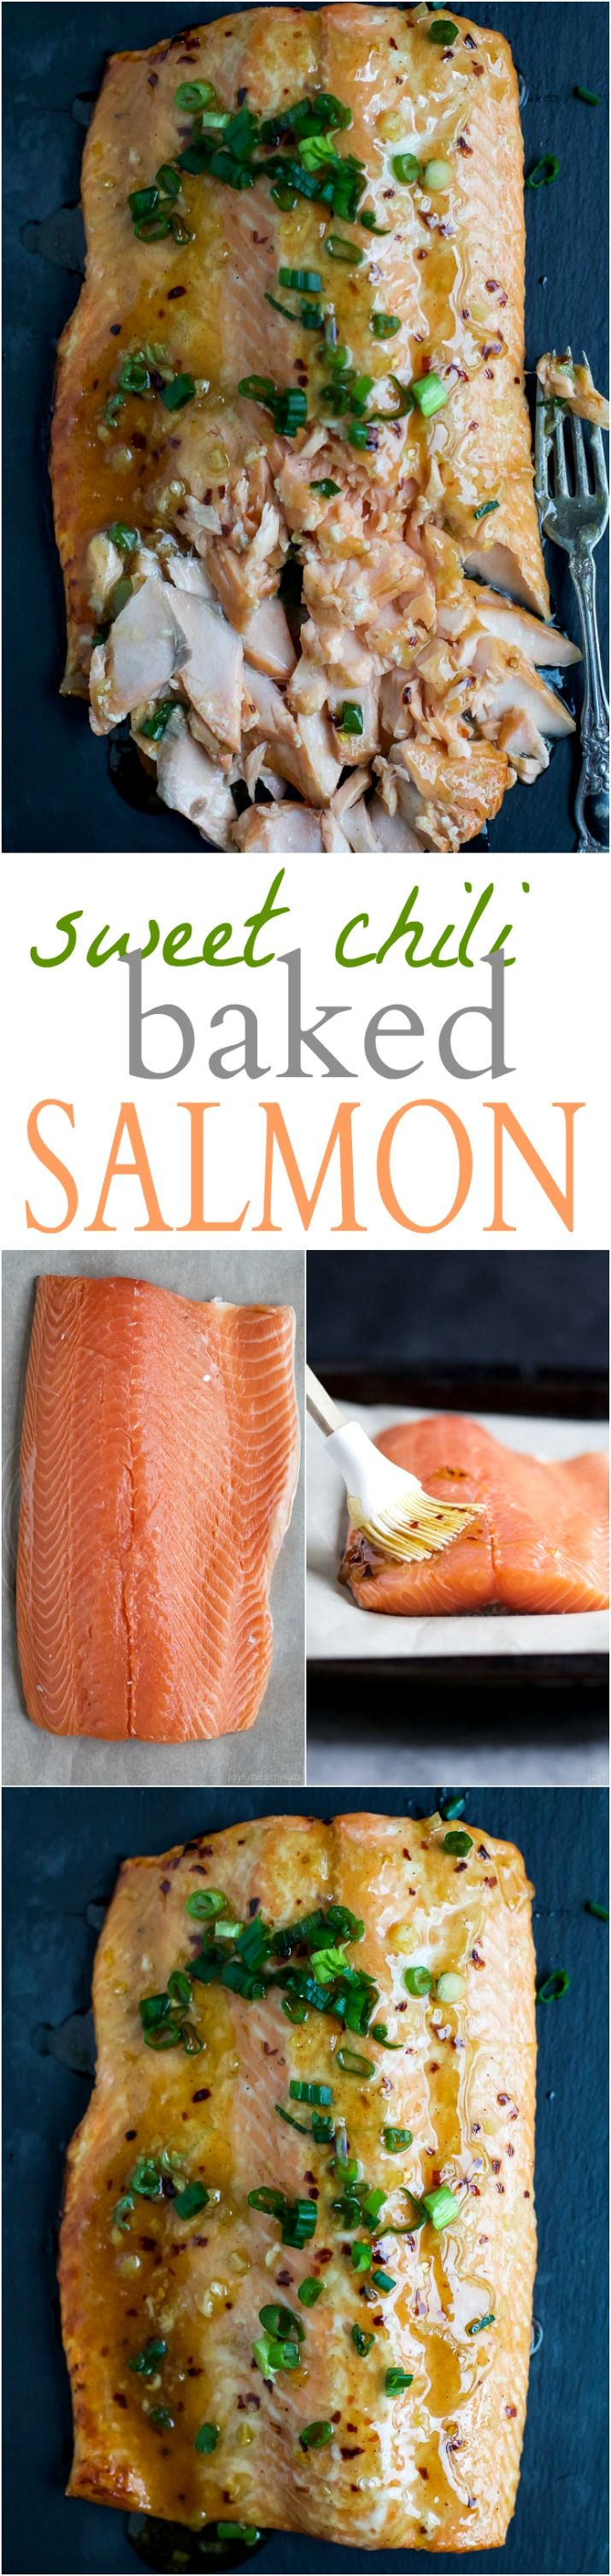 An easy SWEET CHILI BAKED SALMON recipe that's high in protein, low in calories, and only takes 30 minutes to make!   joyfulhealthyeats.com